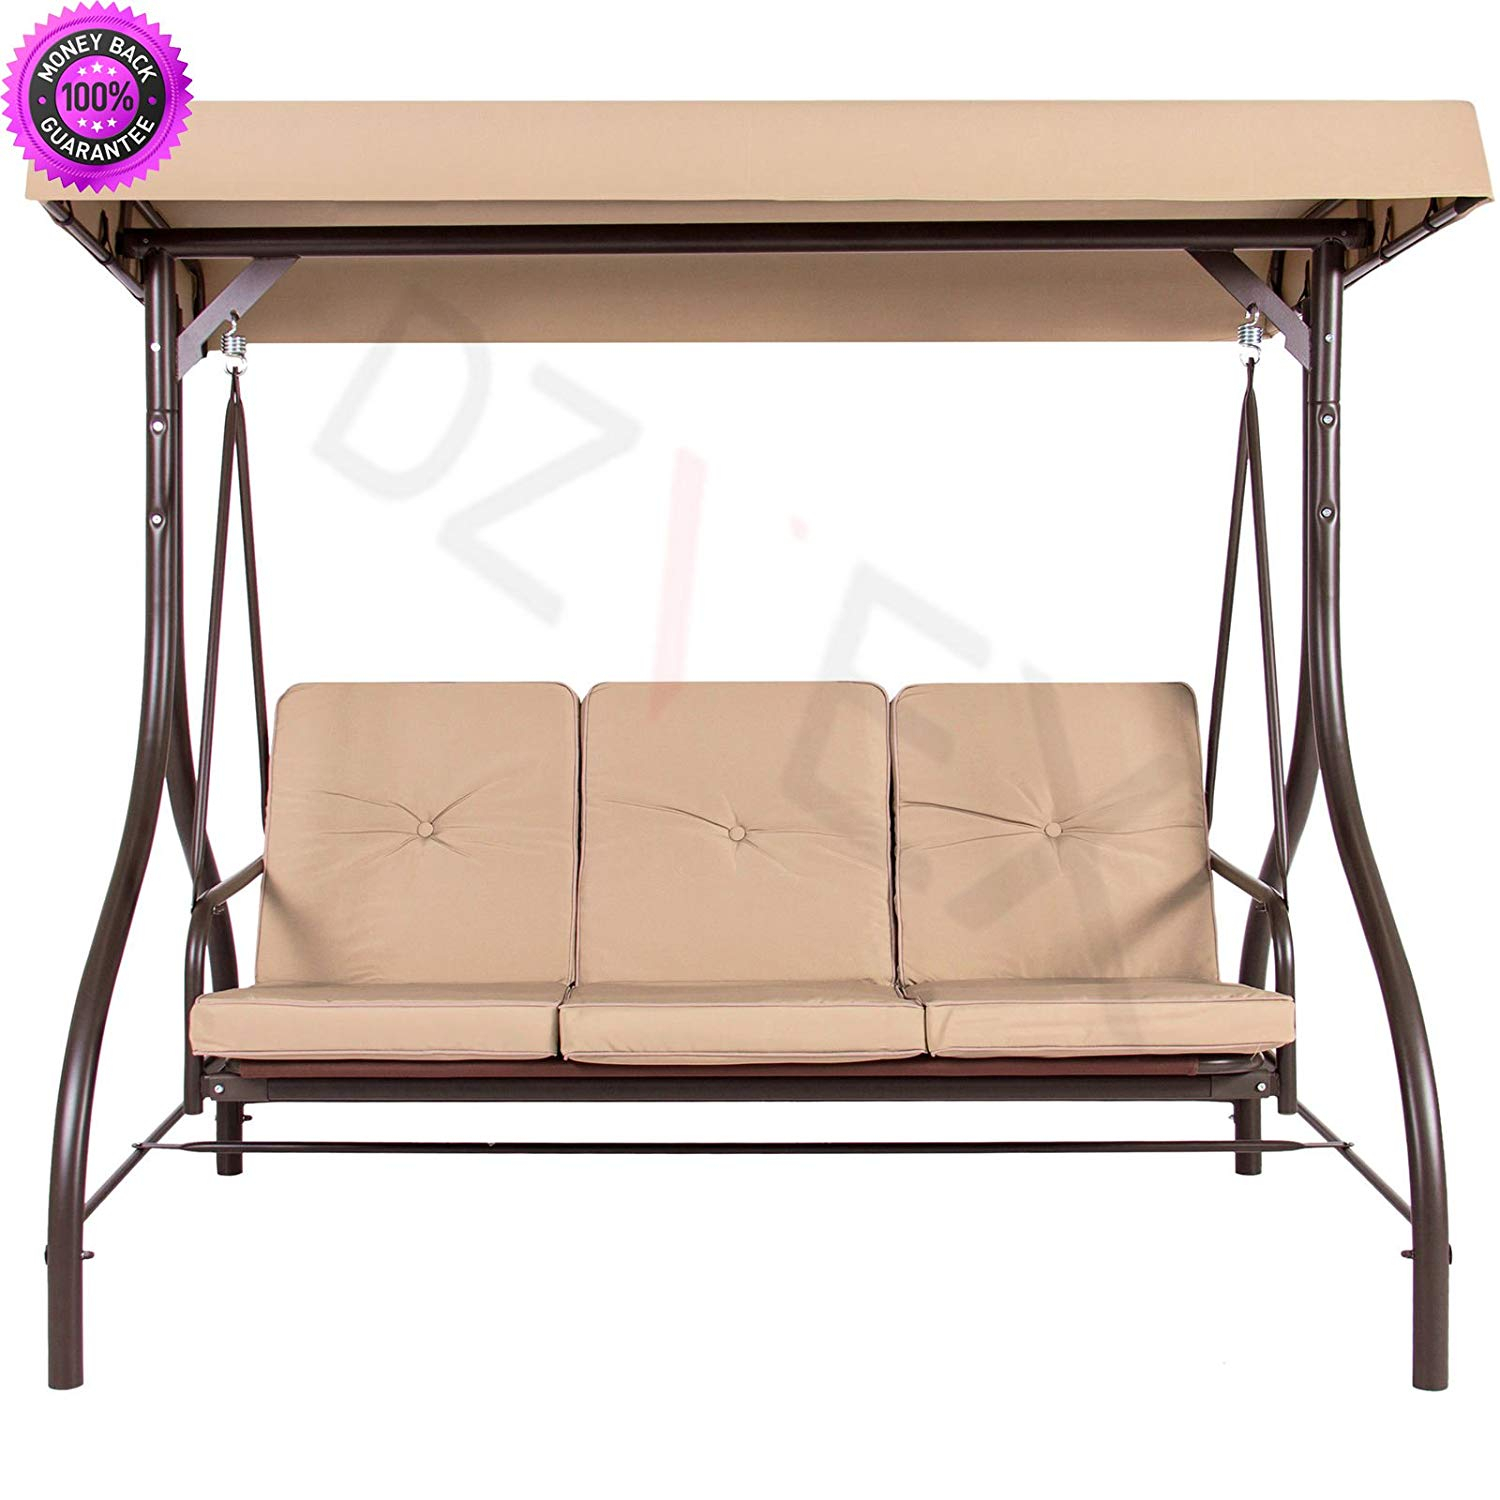 Cheap Wooden Garden Swing Seats Outdoor Furniture, Find Intended For 3 Person Light Teak Oil Wood Outdoor Swings (View 15 of 25)